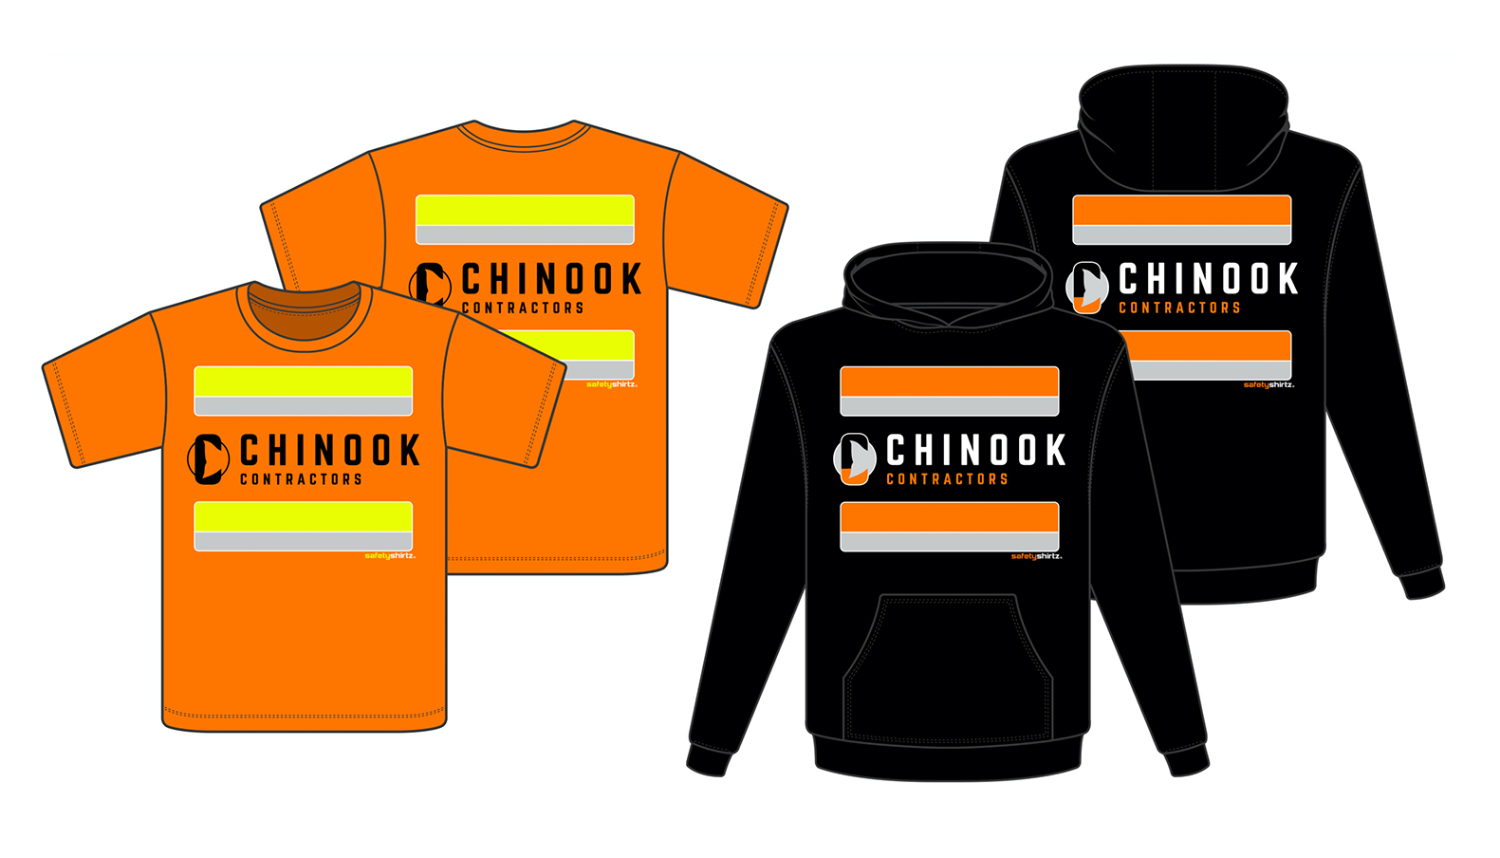 Chinook Contractors Uniforms